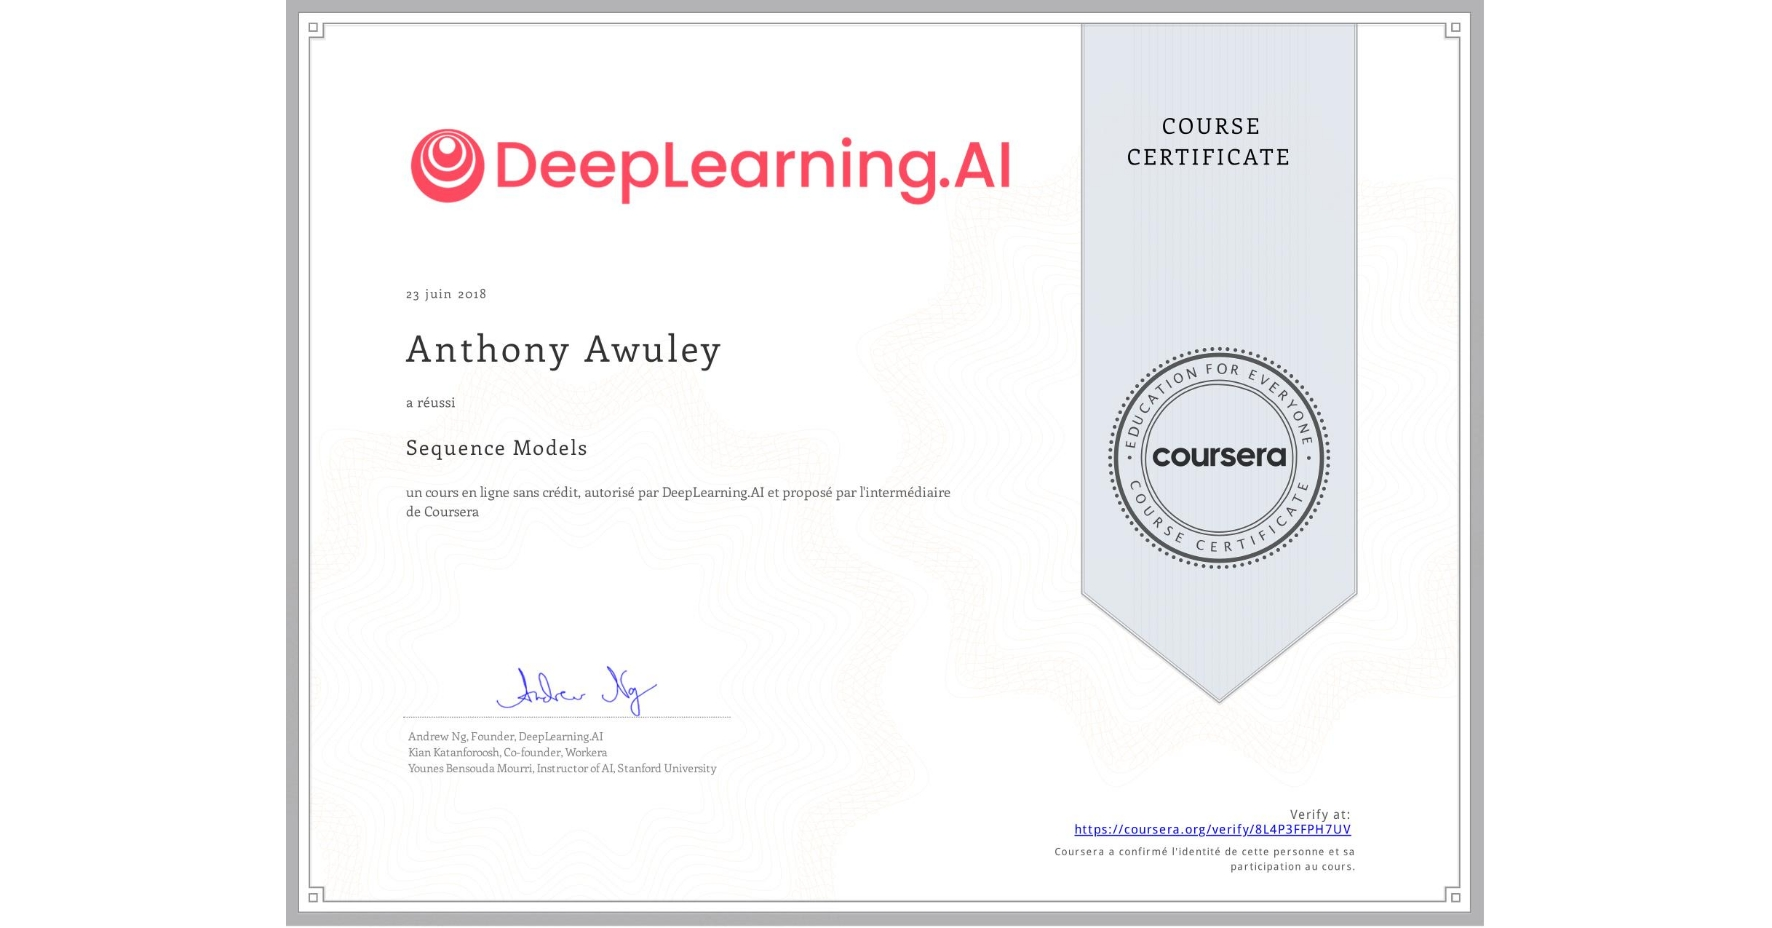 View certificate for Anthony Awuley, Sequence Models, an online non-credit course authorized by DeepLearning.AI and offered through Coursera